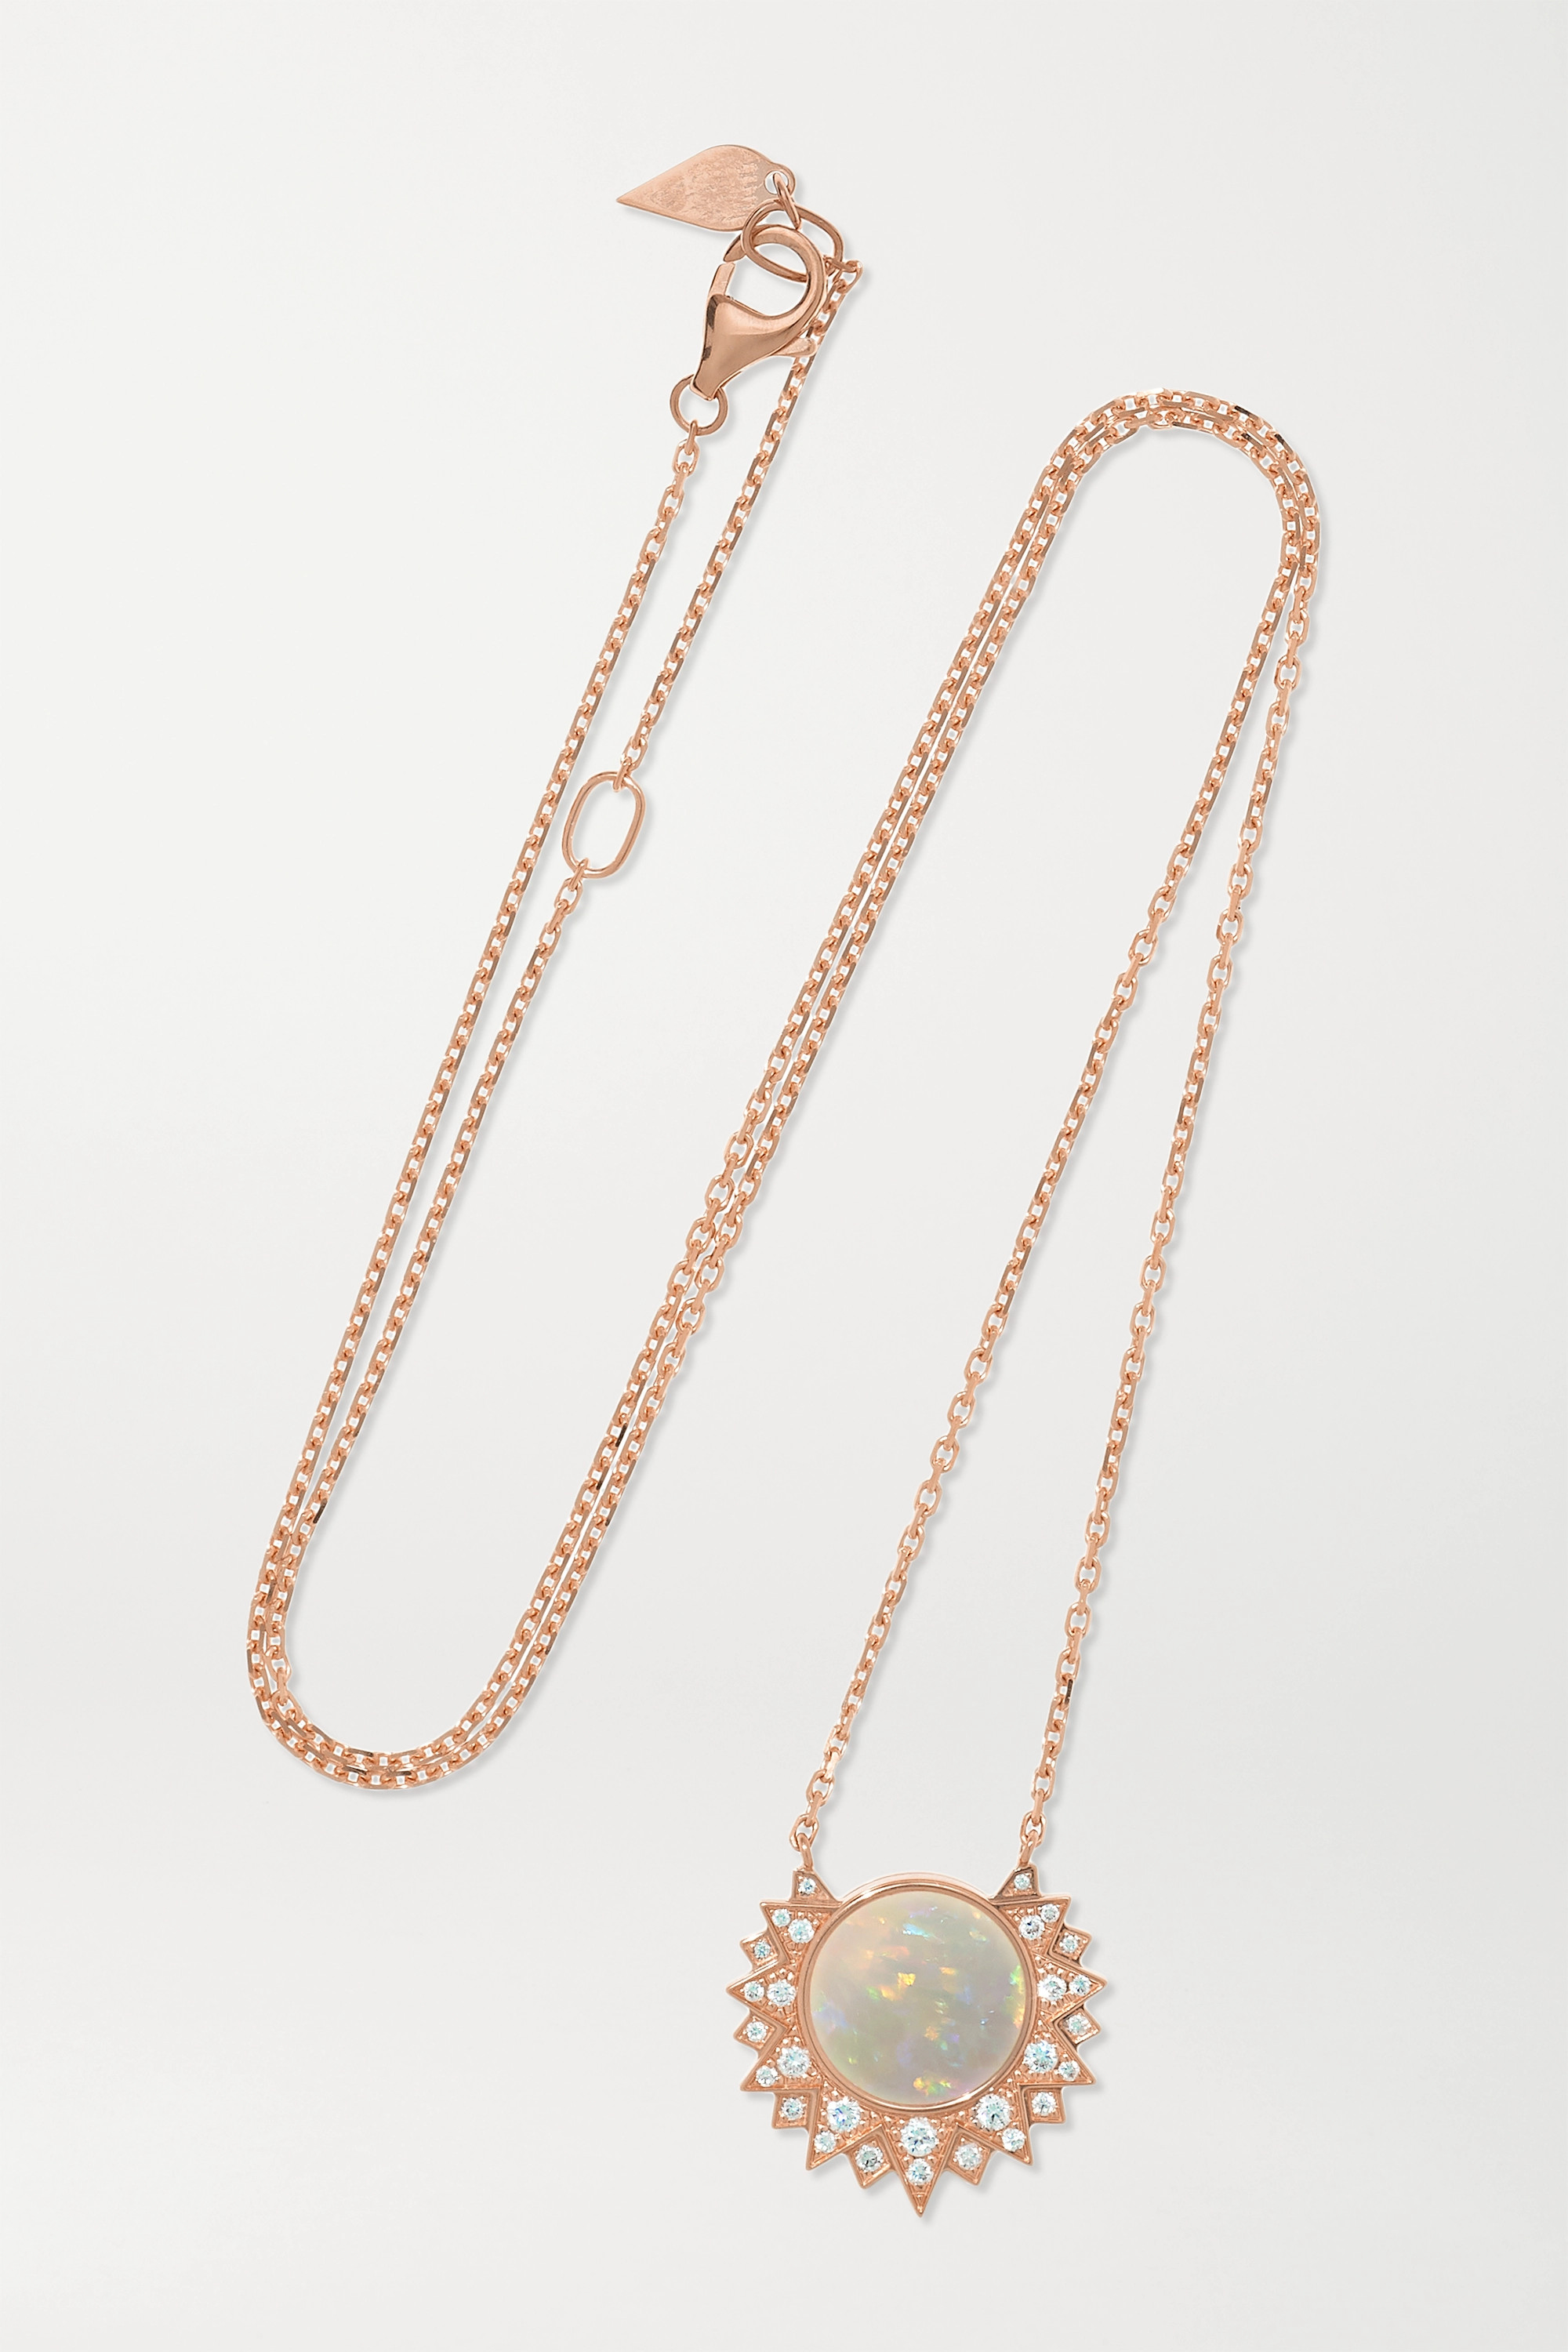 Piaget Collier en or rose 18 carats, opale et diamants Sunlight